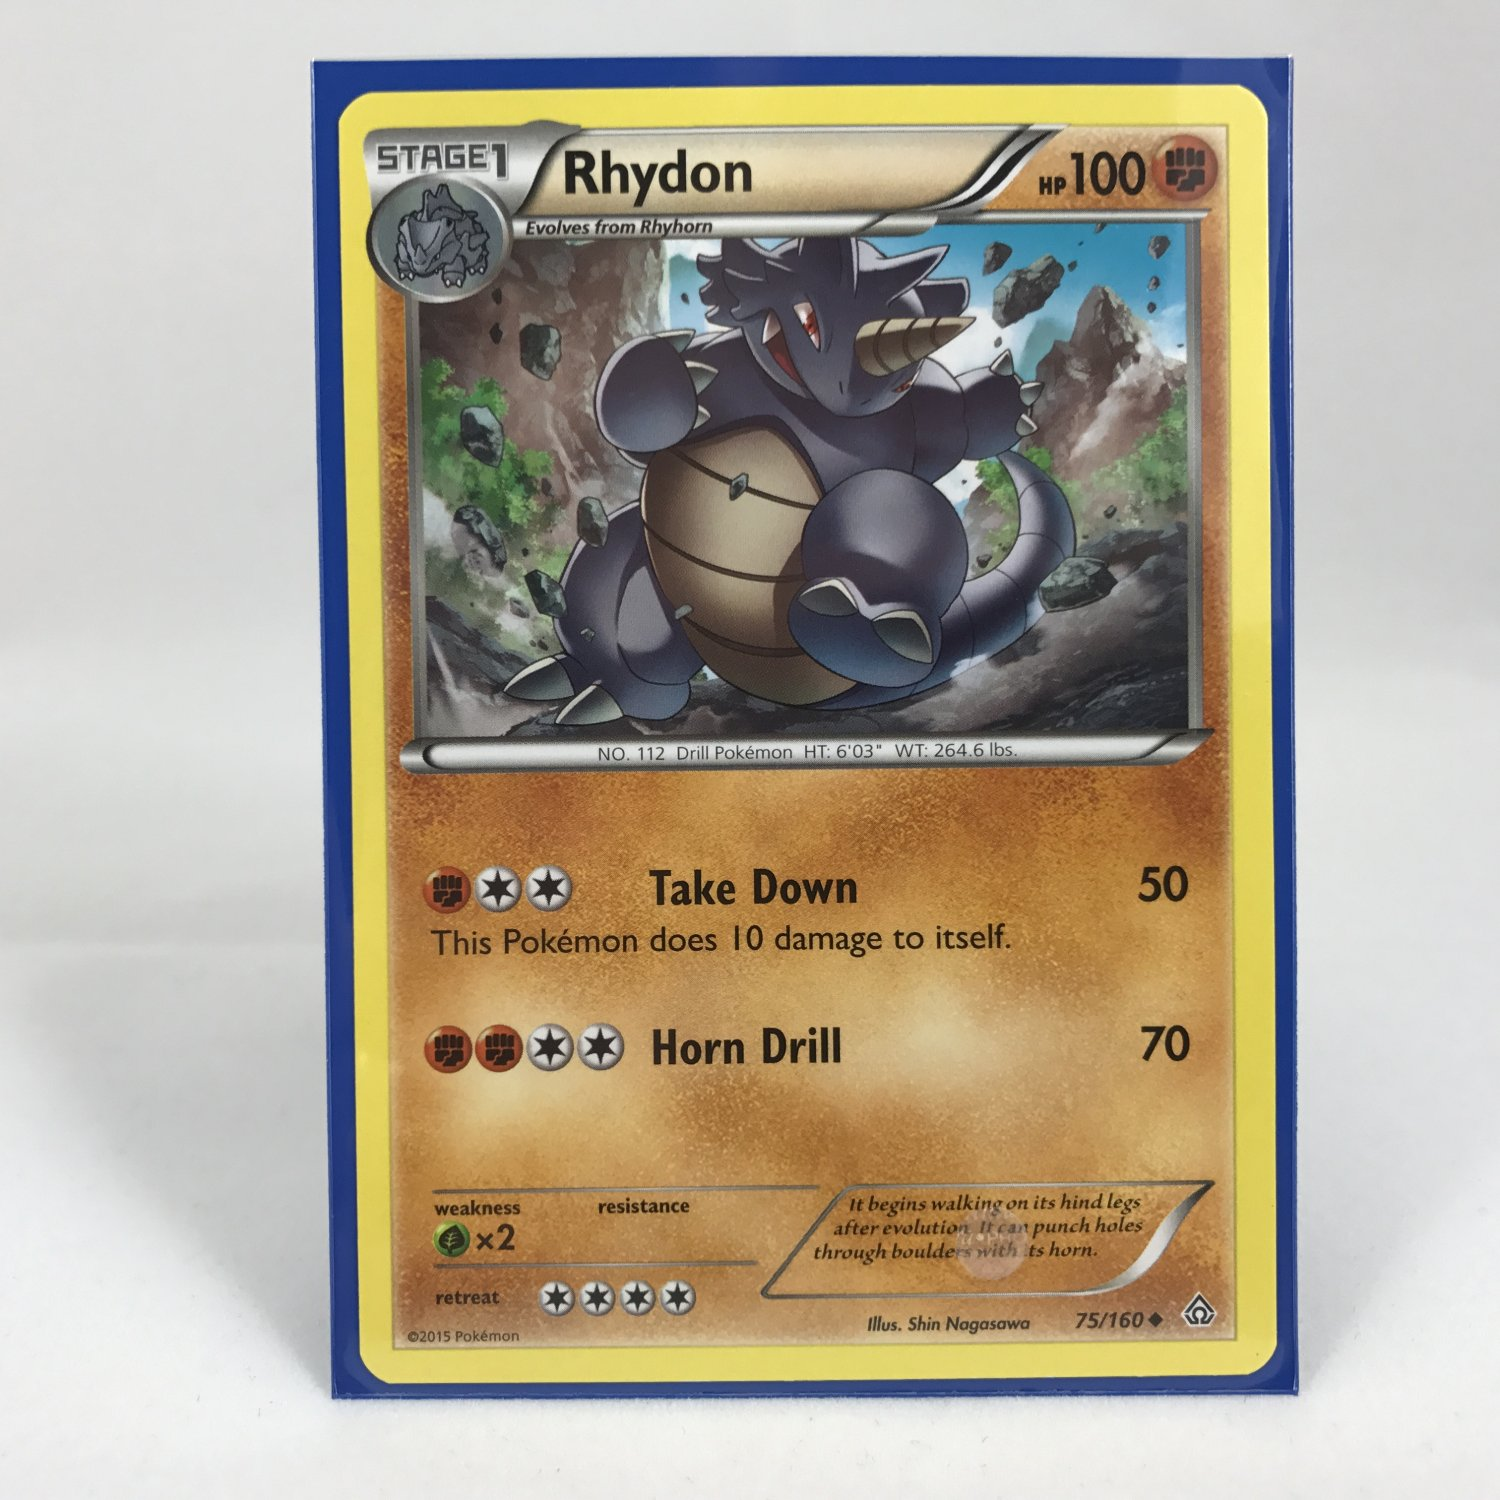 Pokemon Stage 1 Rhydon 75/160 Card MINT